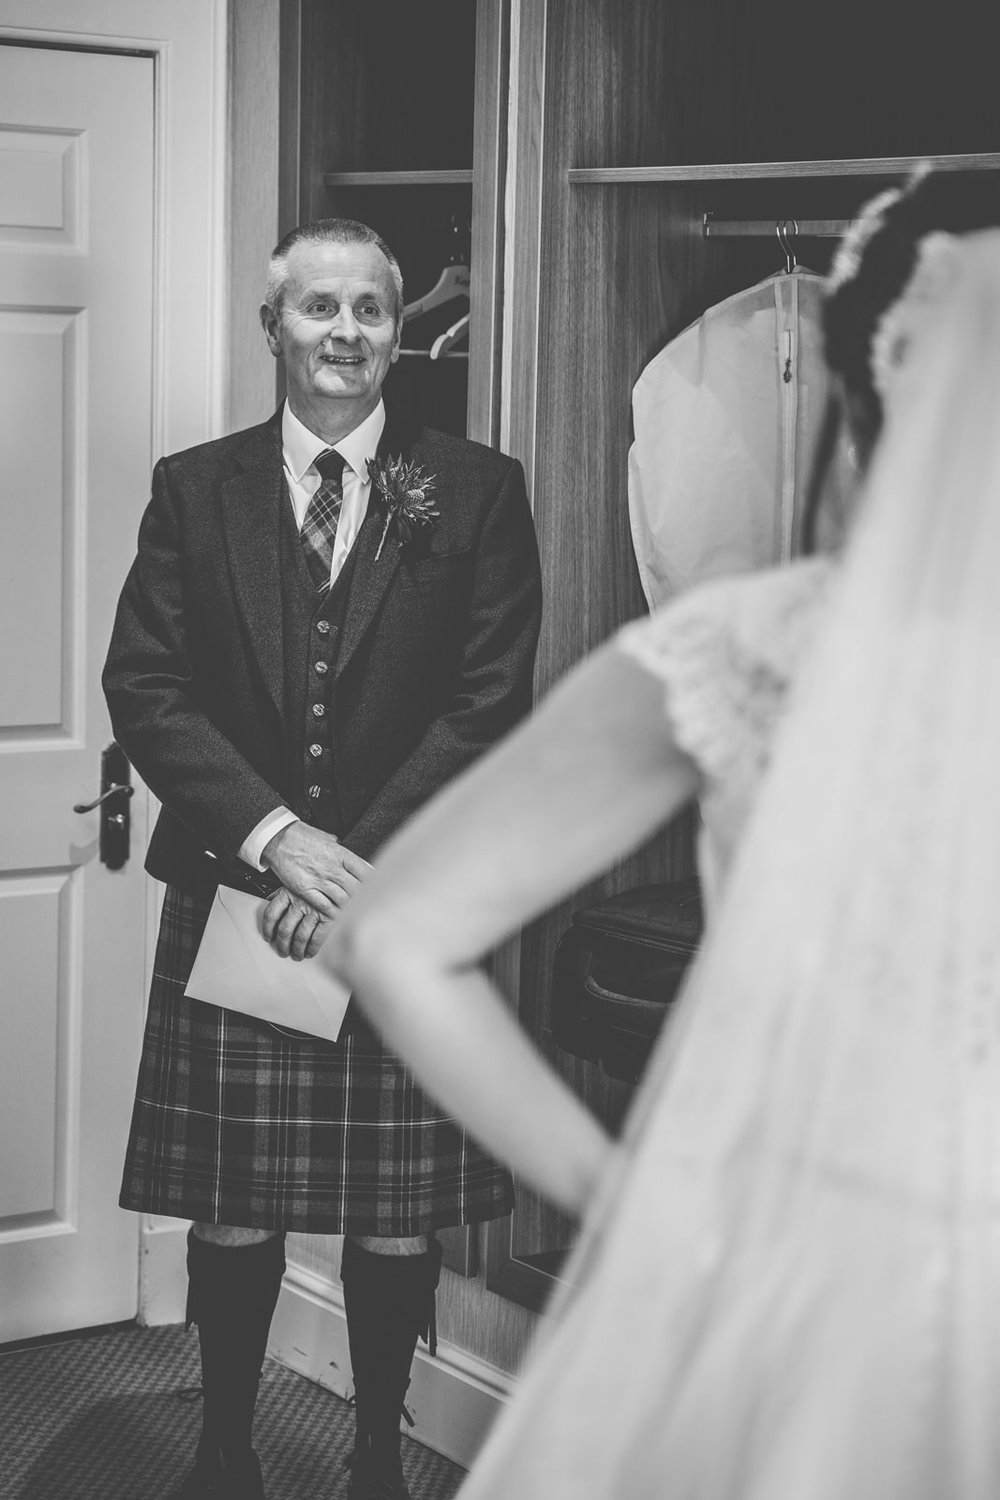 brisbane-house-hotel-wedding-largs-dearly-photography (27 of 94).jpg